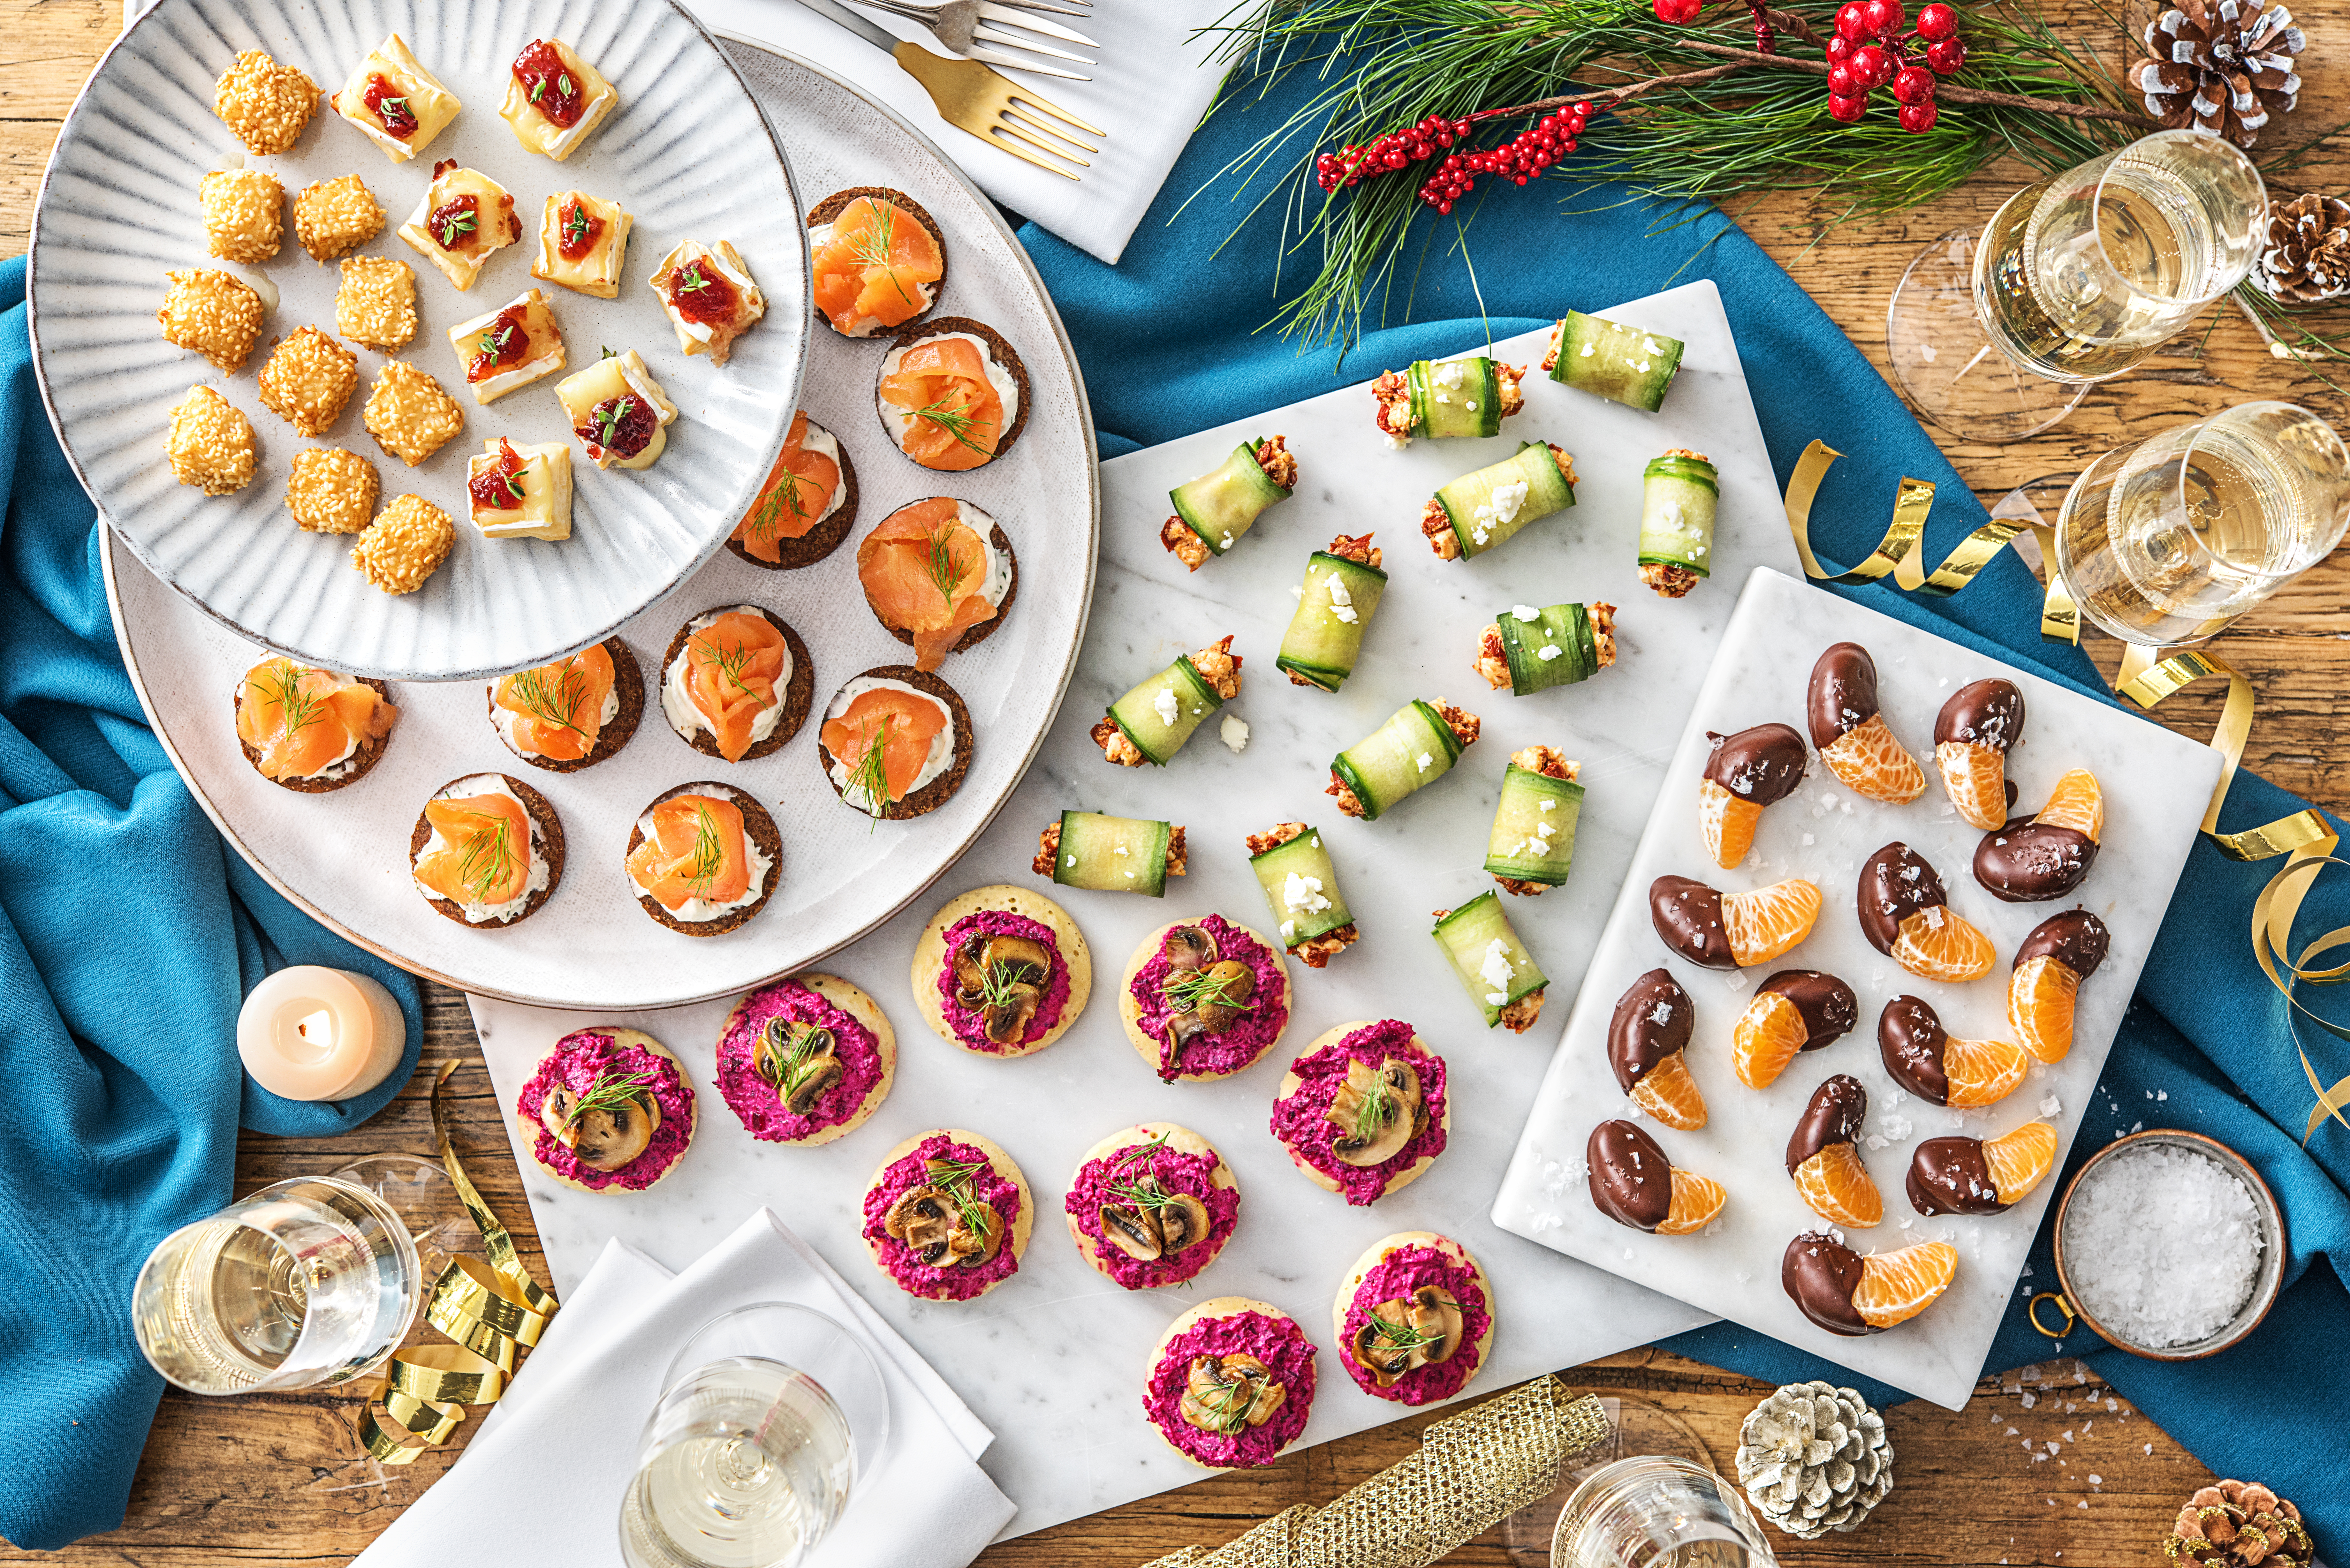 Easy canape recipes uk 100 images smoked salmon mousse easy canape recipes uk 6 showstopping canapes hellofresh food forumfinder Images